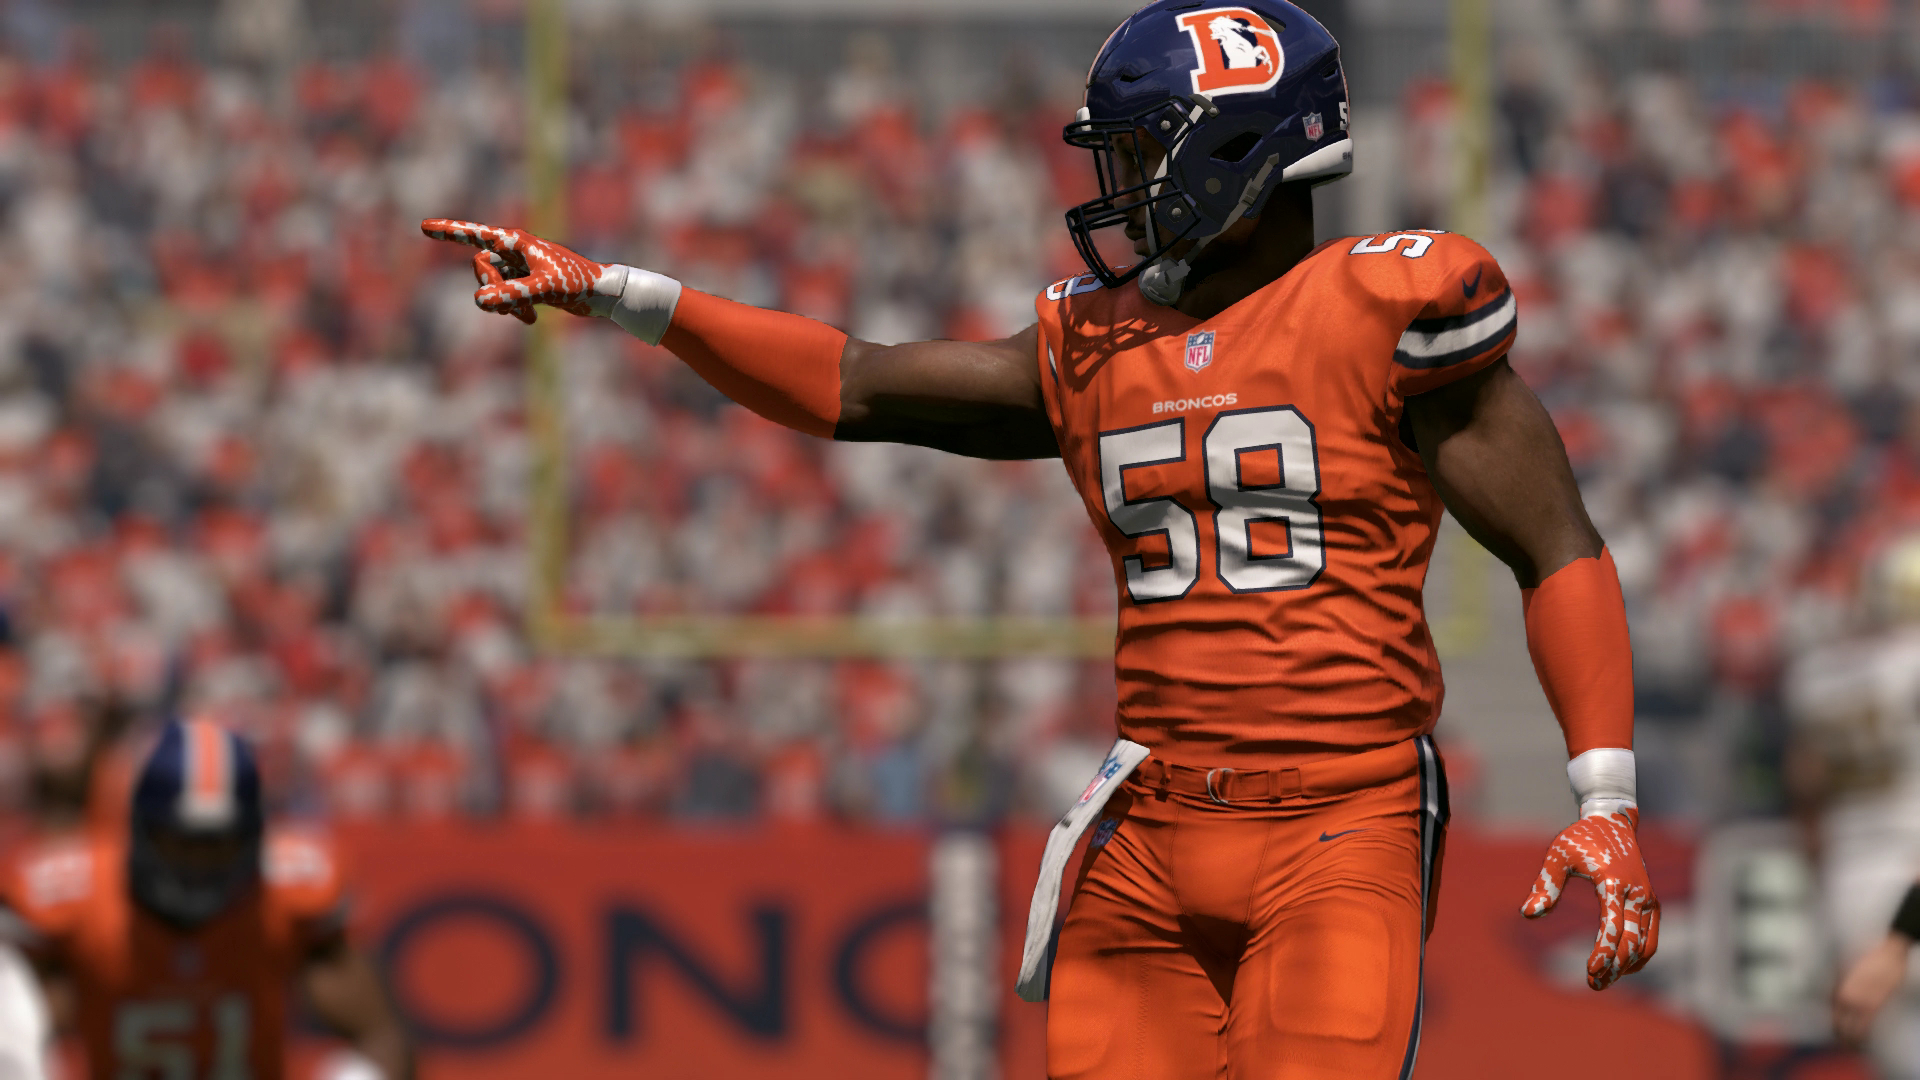 All The Color Rush Uniforms Have Been Added To Madden Nfl